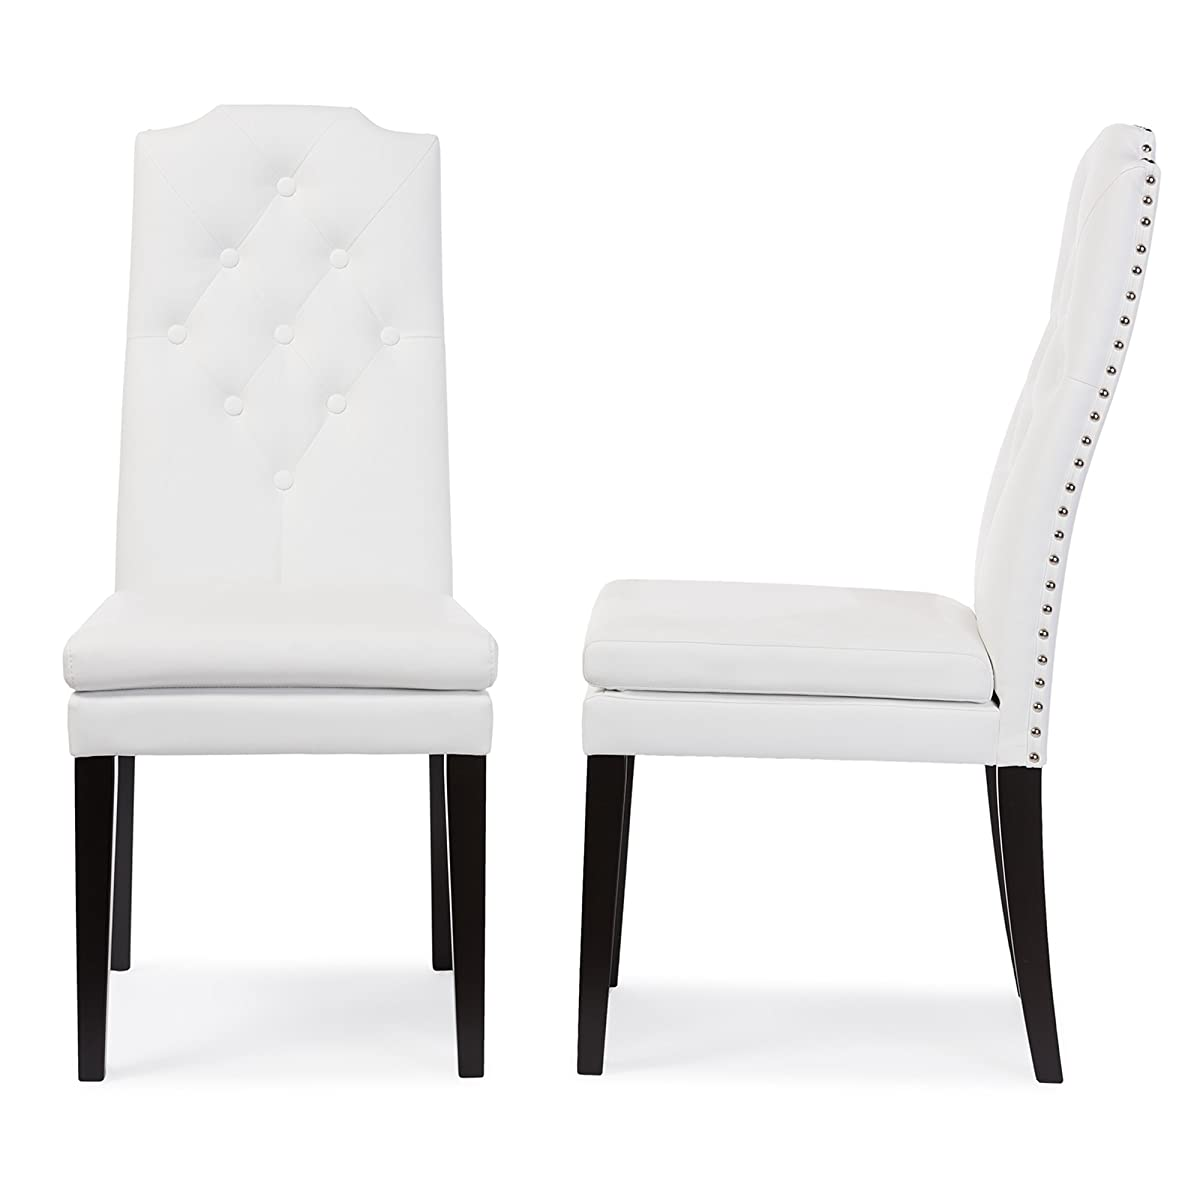 Baxton Studio Dylin Modern & Contemporary Faux Leather Button Tufted Nailheads Trim Dining Chair (Set of 2), White